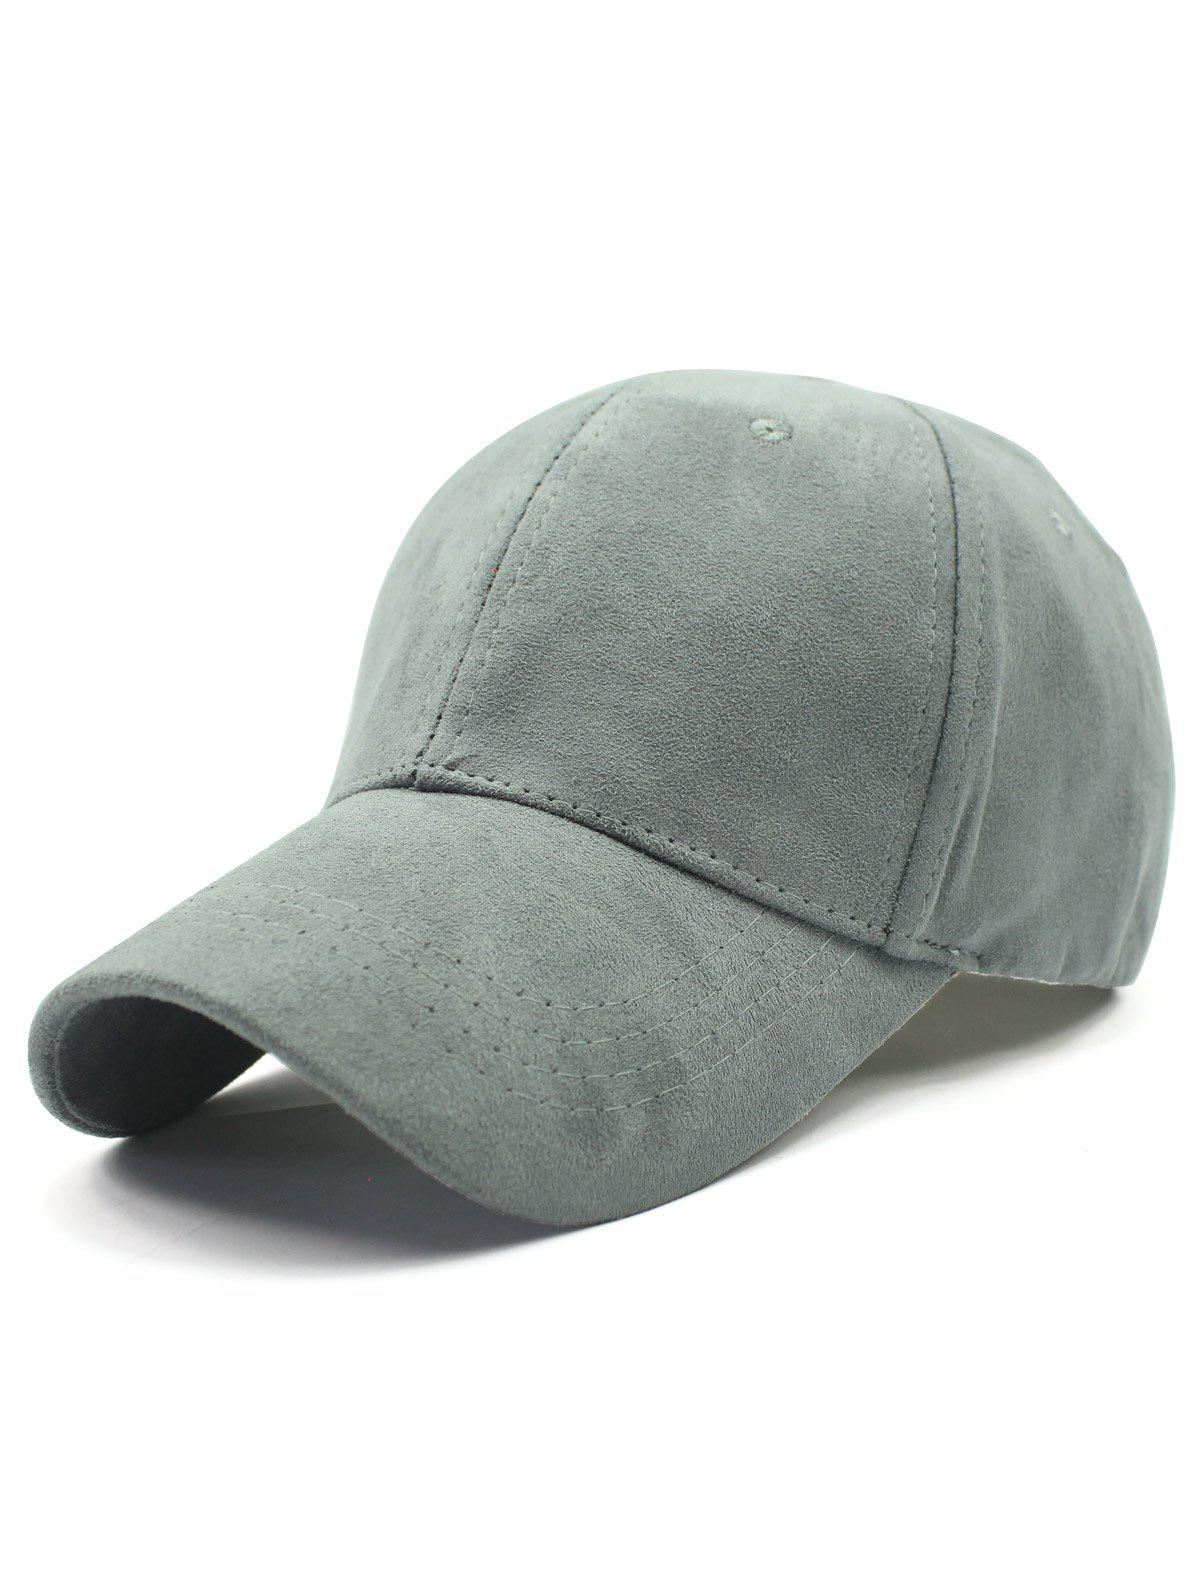 Stylish Solid Color Faux Suede Baseball Hat, Light gray